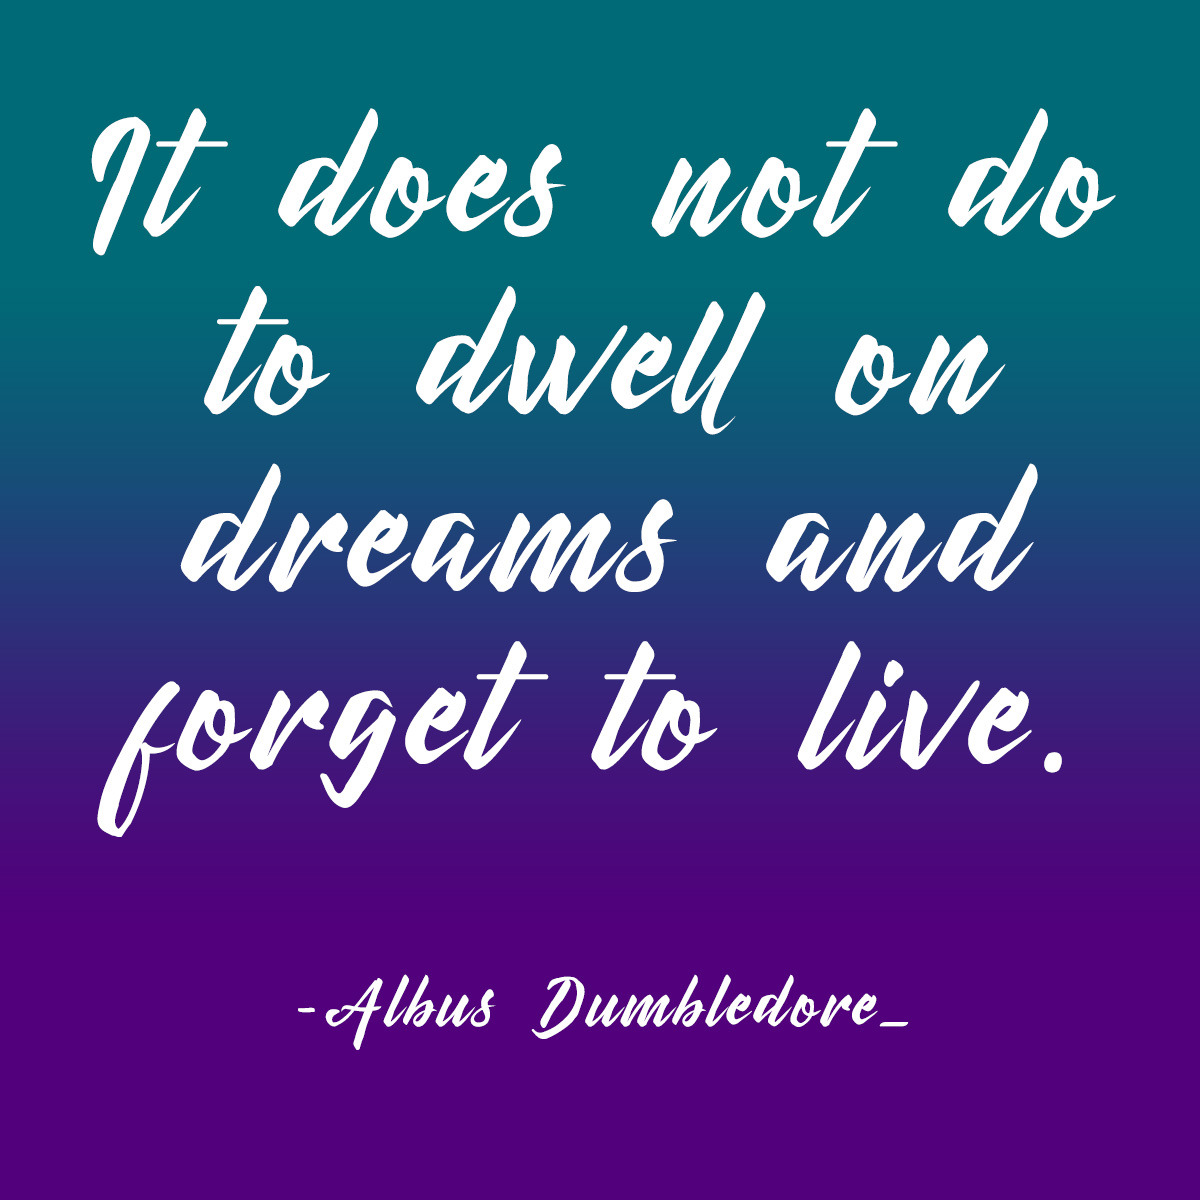 dreams-dumbledore-quote.jpg